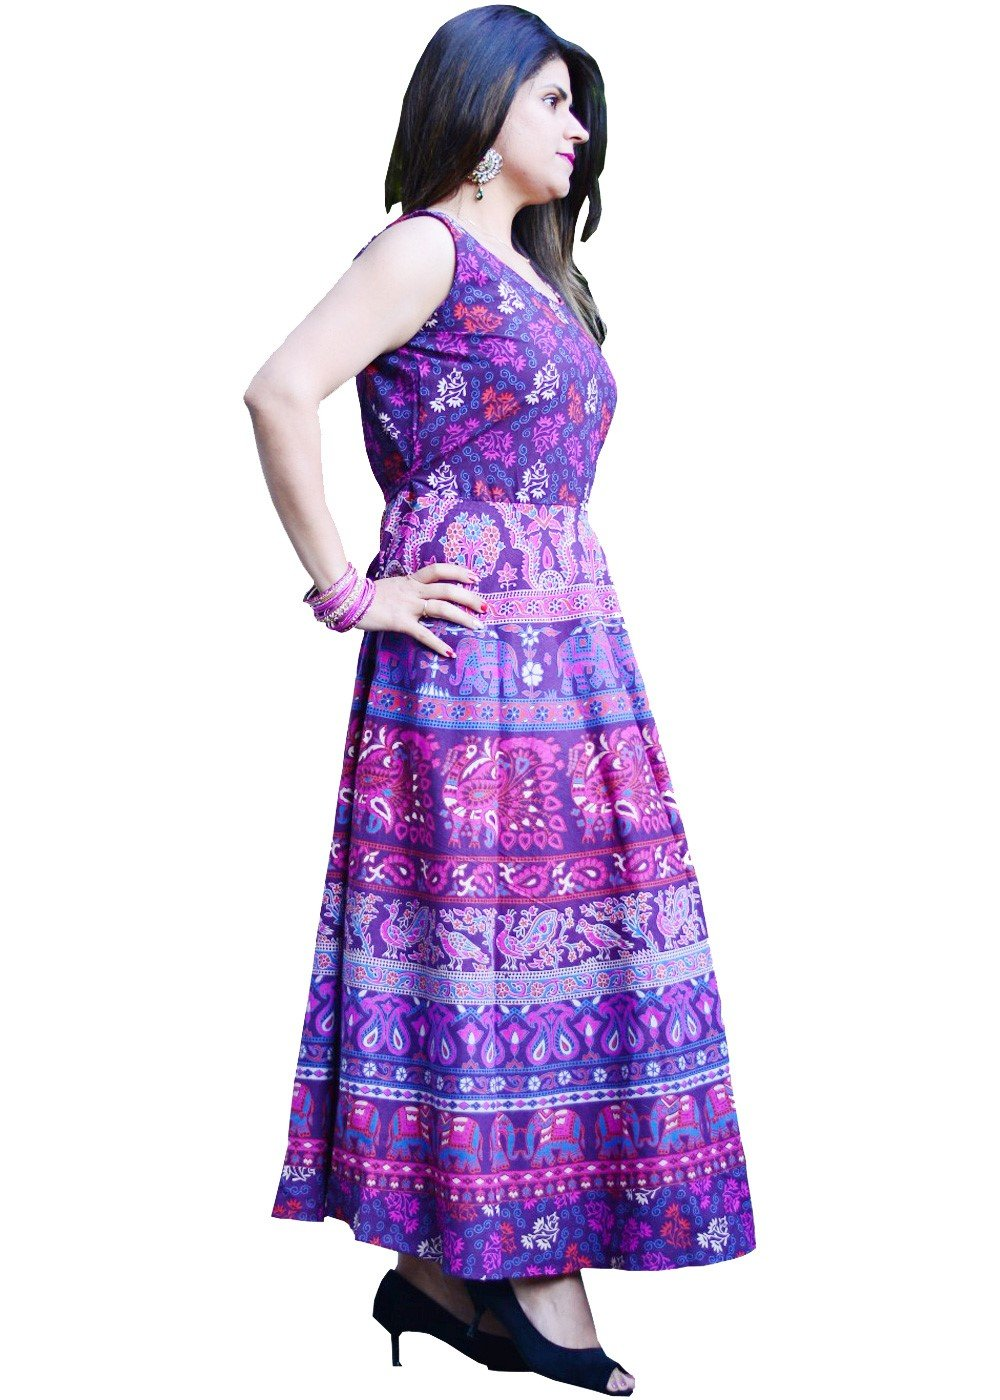 Nature Print Handmade Maxi Dress Magenta Pink